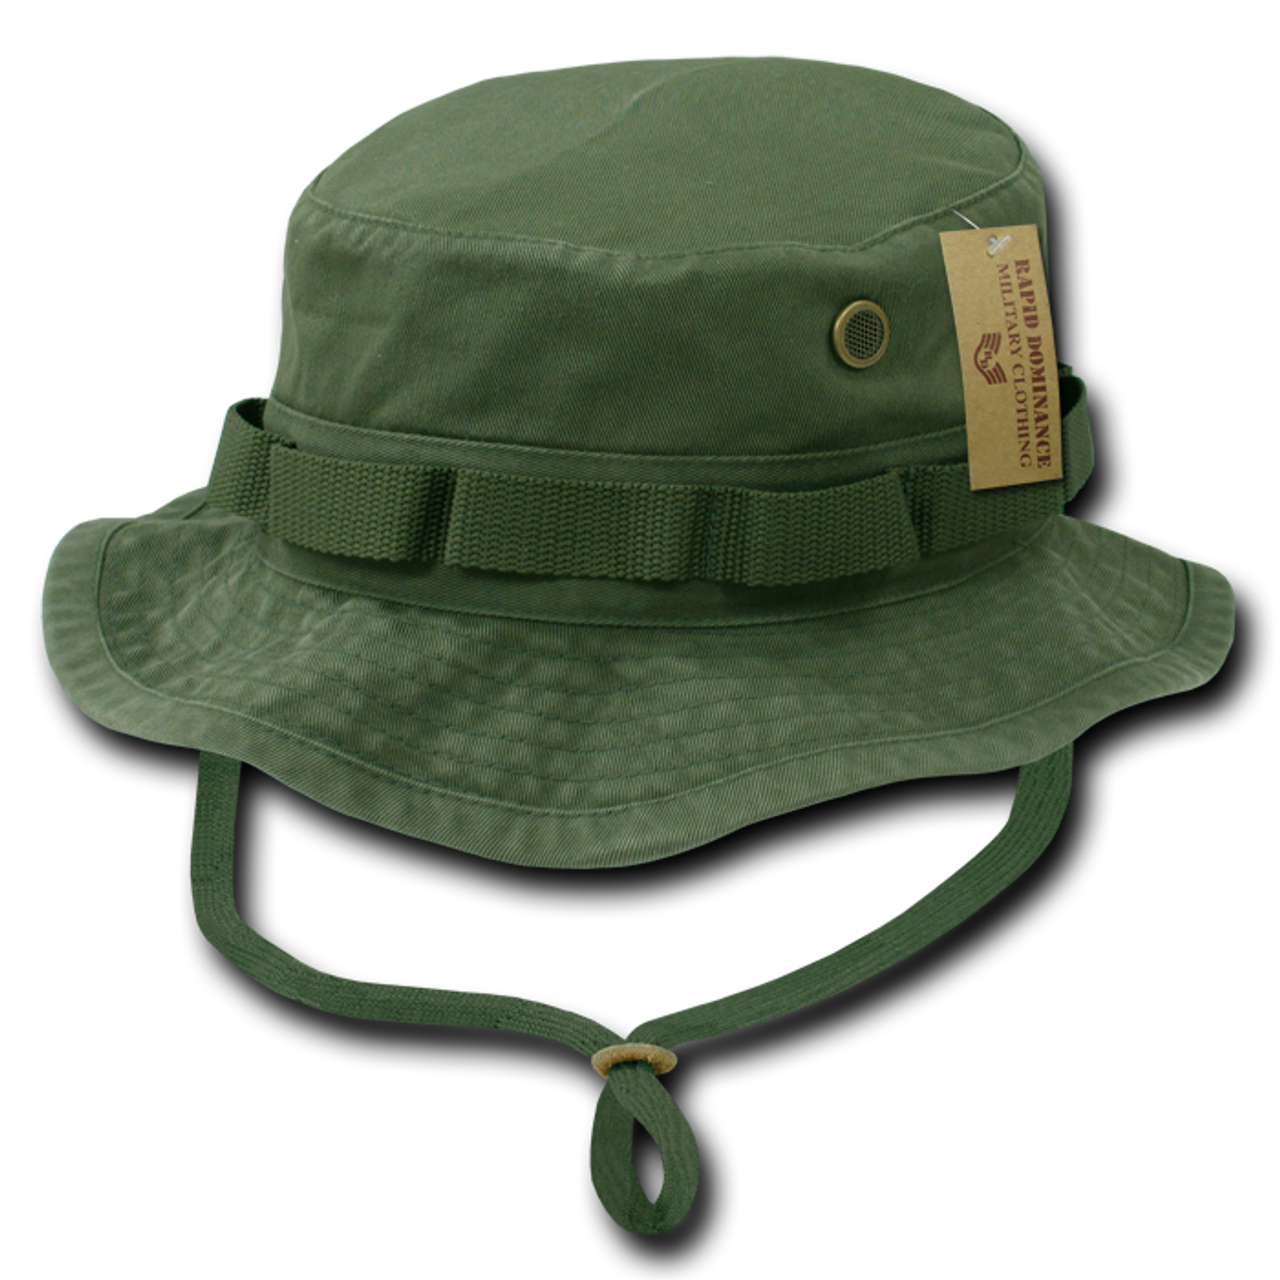 6e54be415bd03 Rapid Dominance R70 Jungle Boonie Hats - Olive